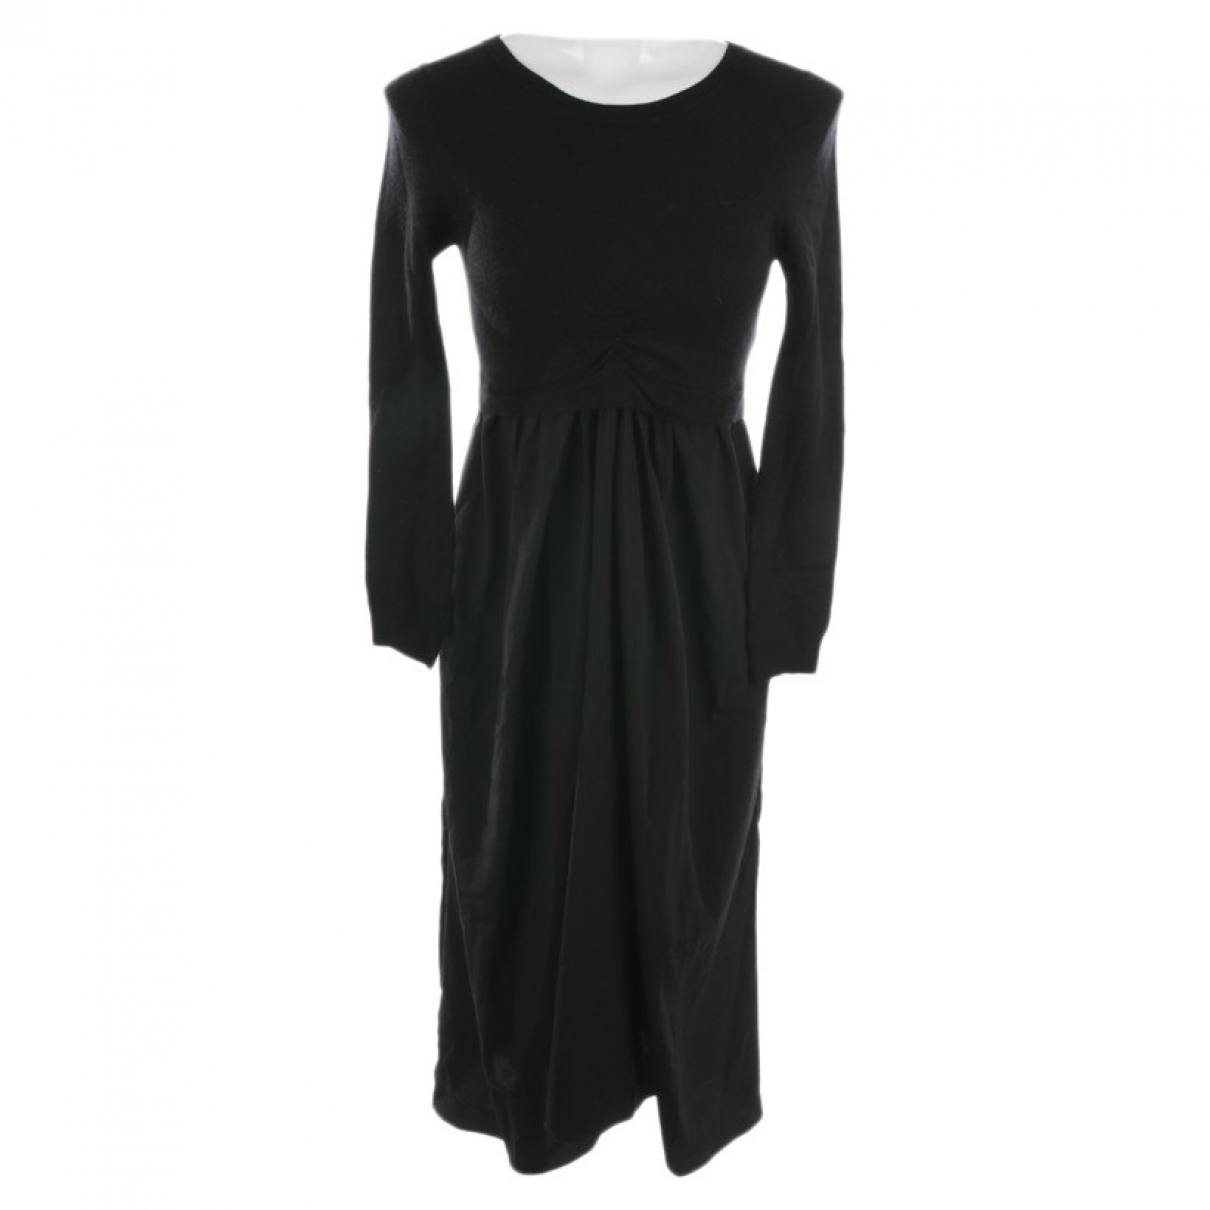 Isabel Marant Etoile \N Black dress for Women 36 FR